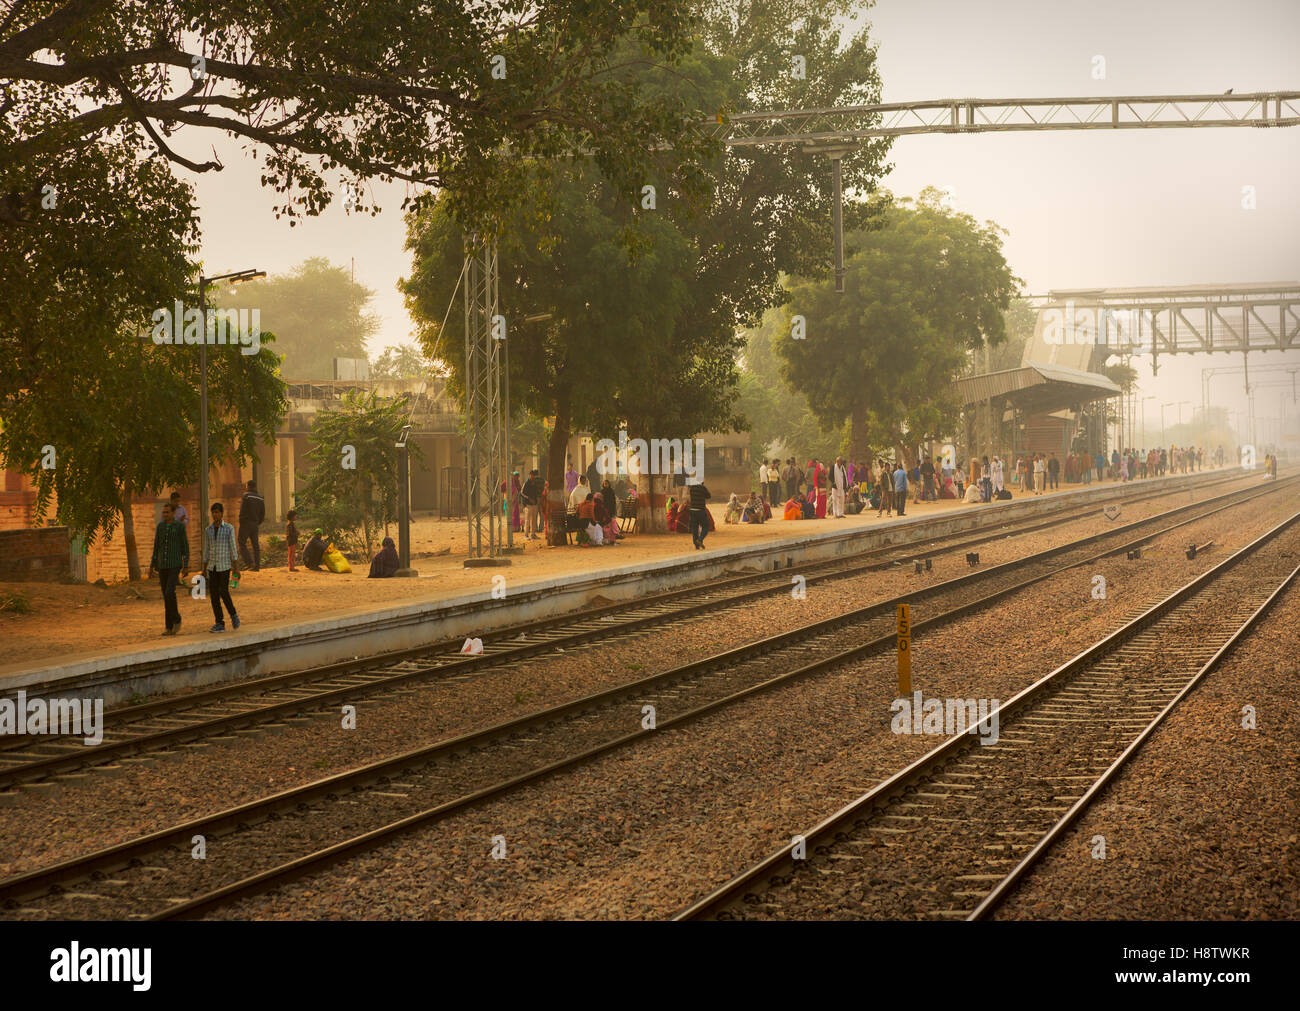 People wait for the train in a station near Delhi.Railway is most common transportation way in India. - Stock Image